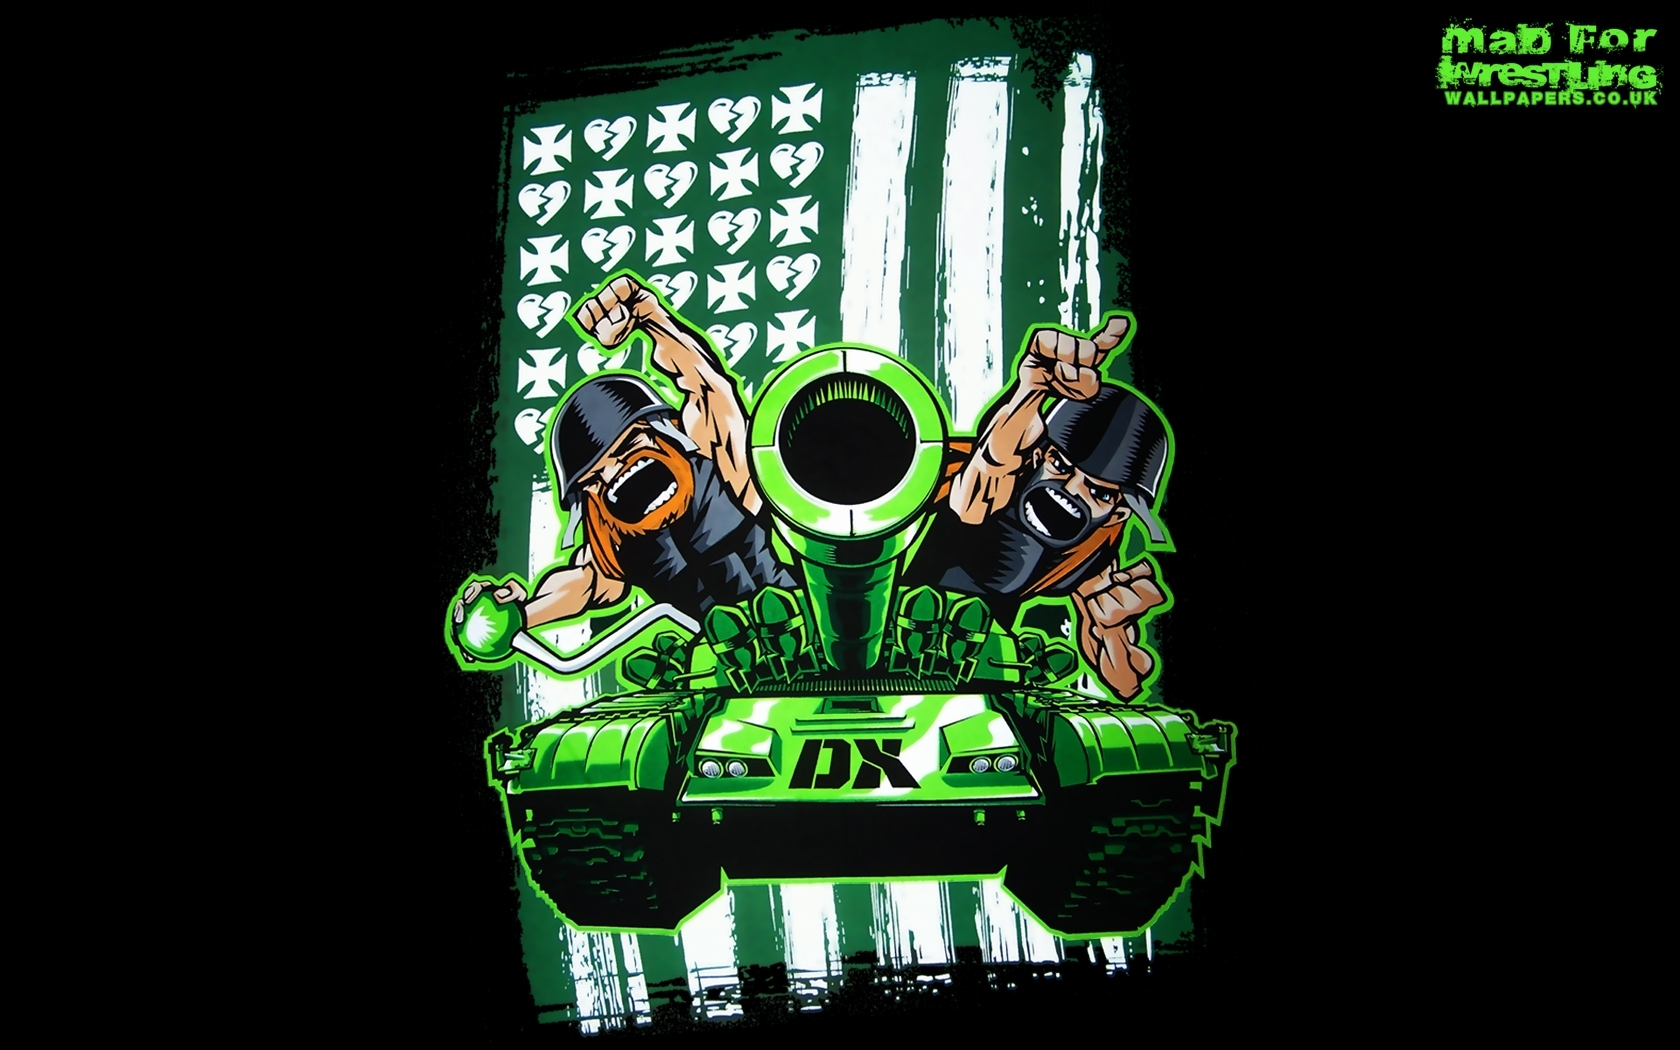 offenderman420 images dx army d generation x 14626096 1680 1050 hd